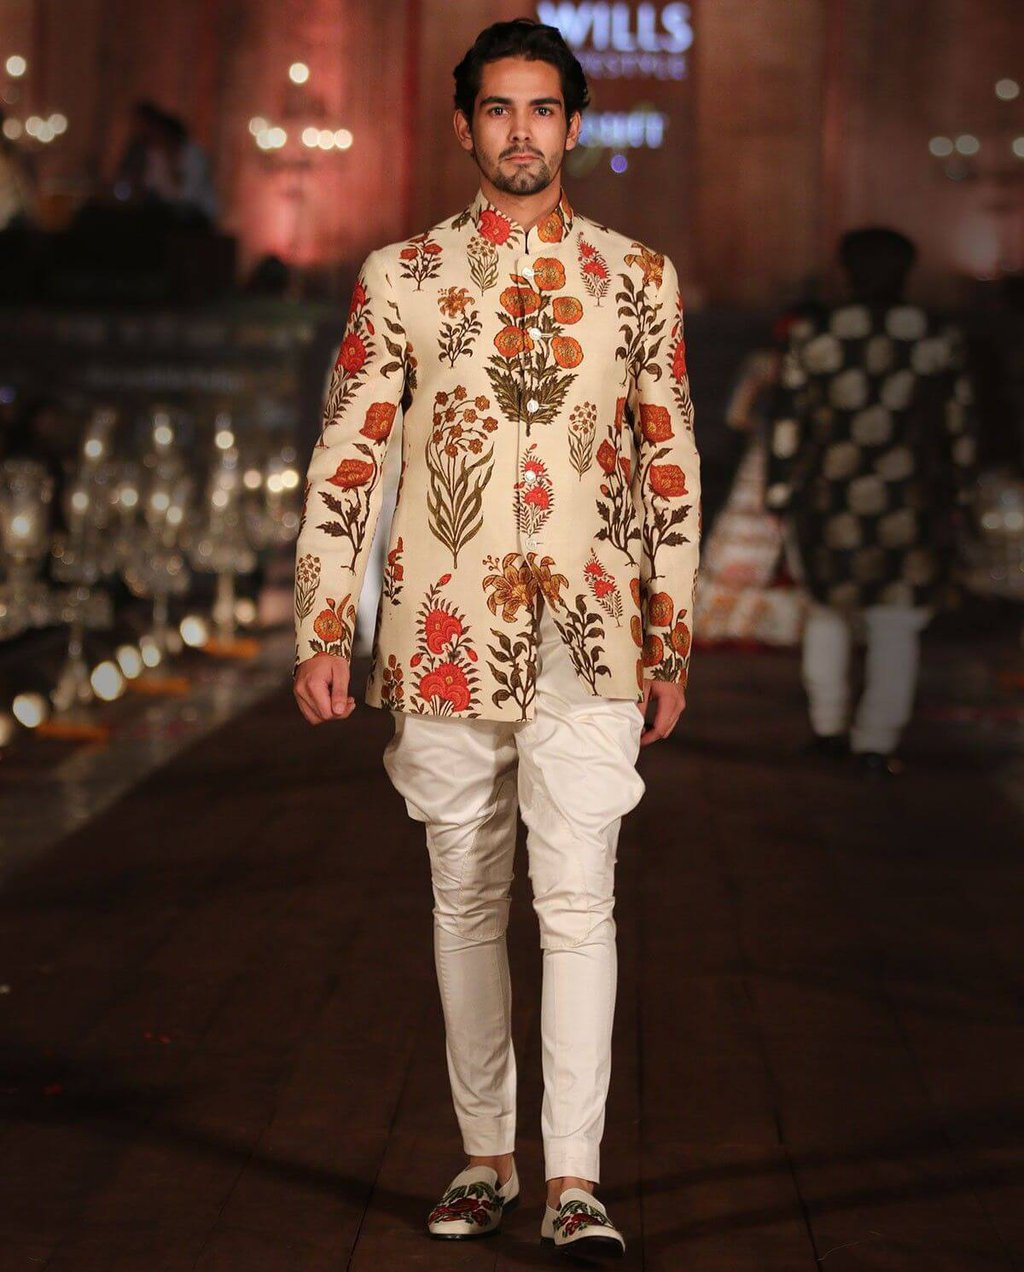 floral-jackets-menswear-for-weddings